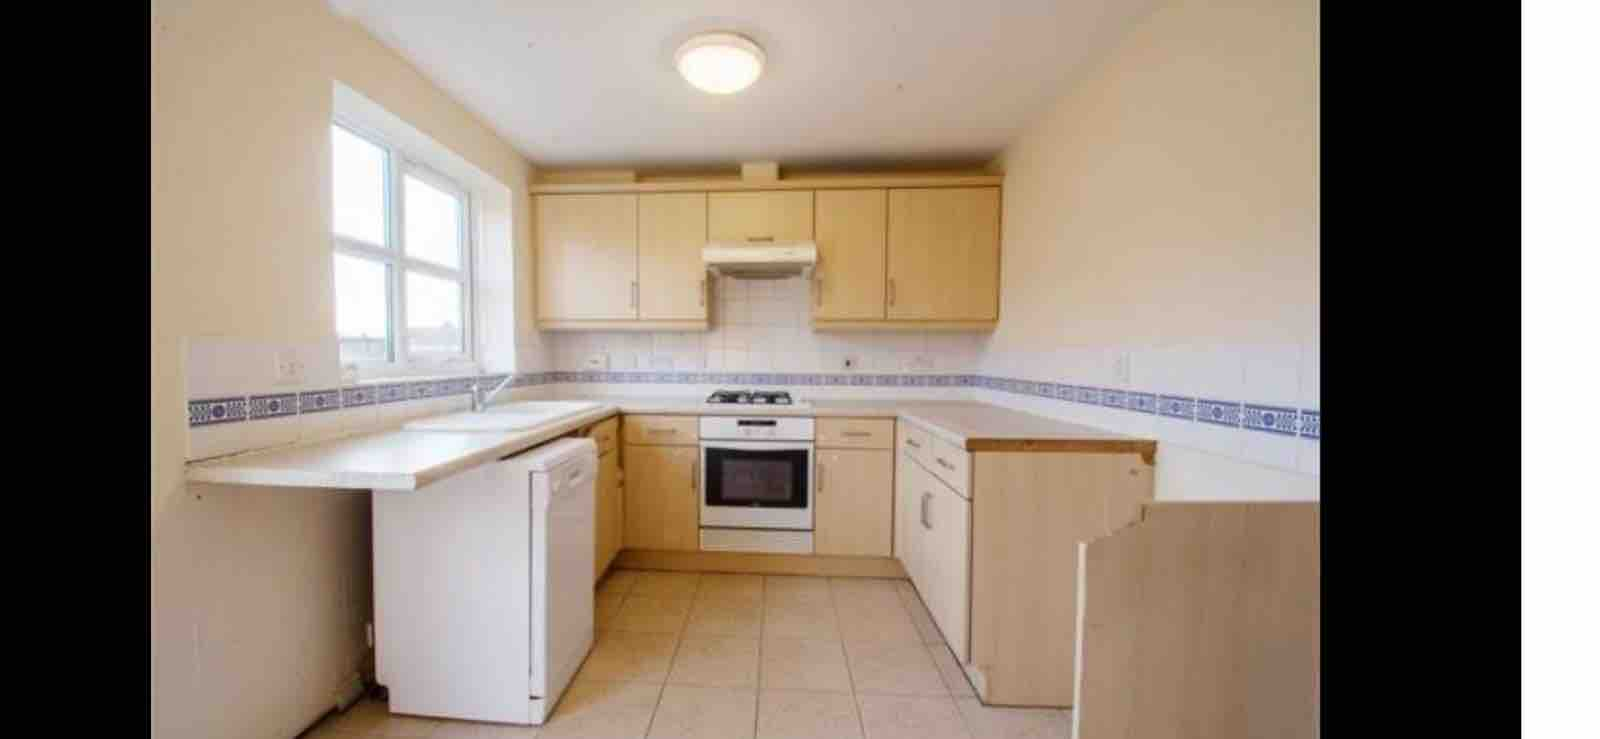 1 room in Bridlington, Bridlington, YO167HU RoomsLocal image